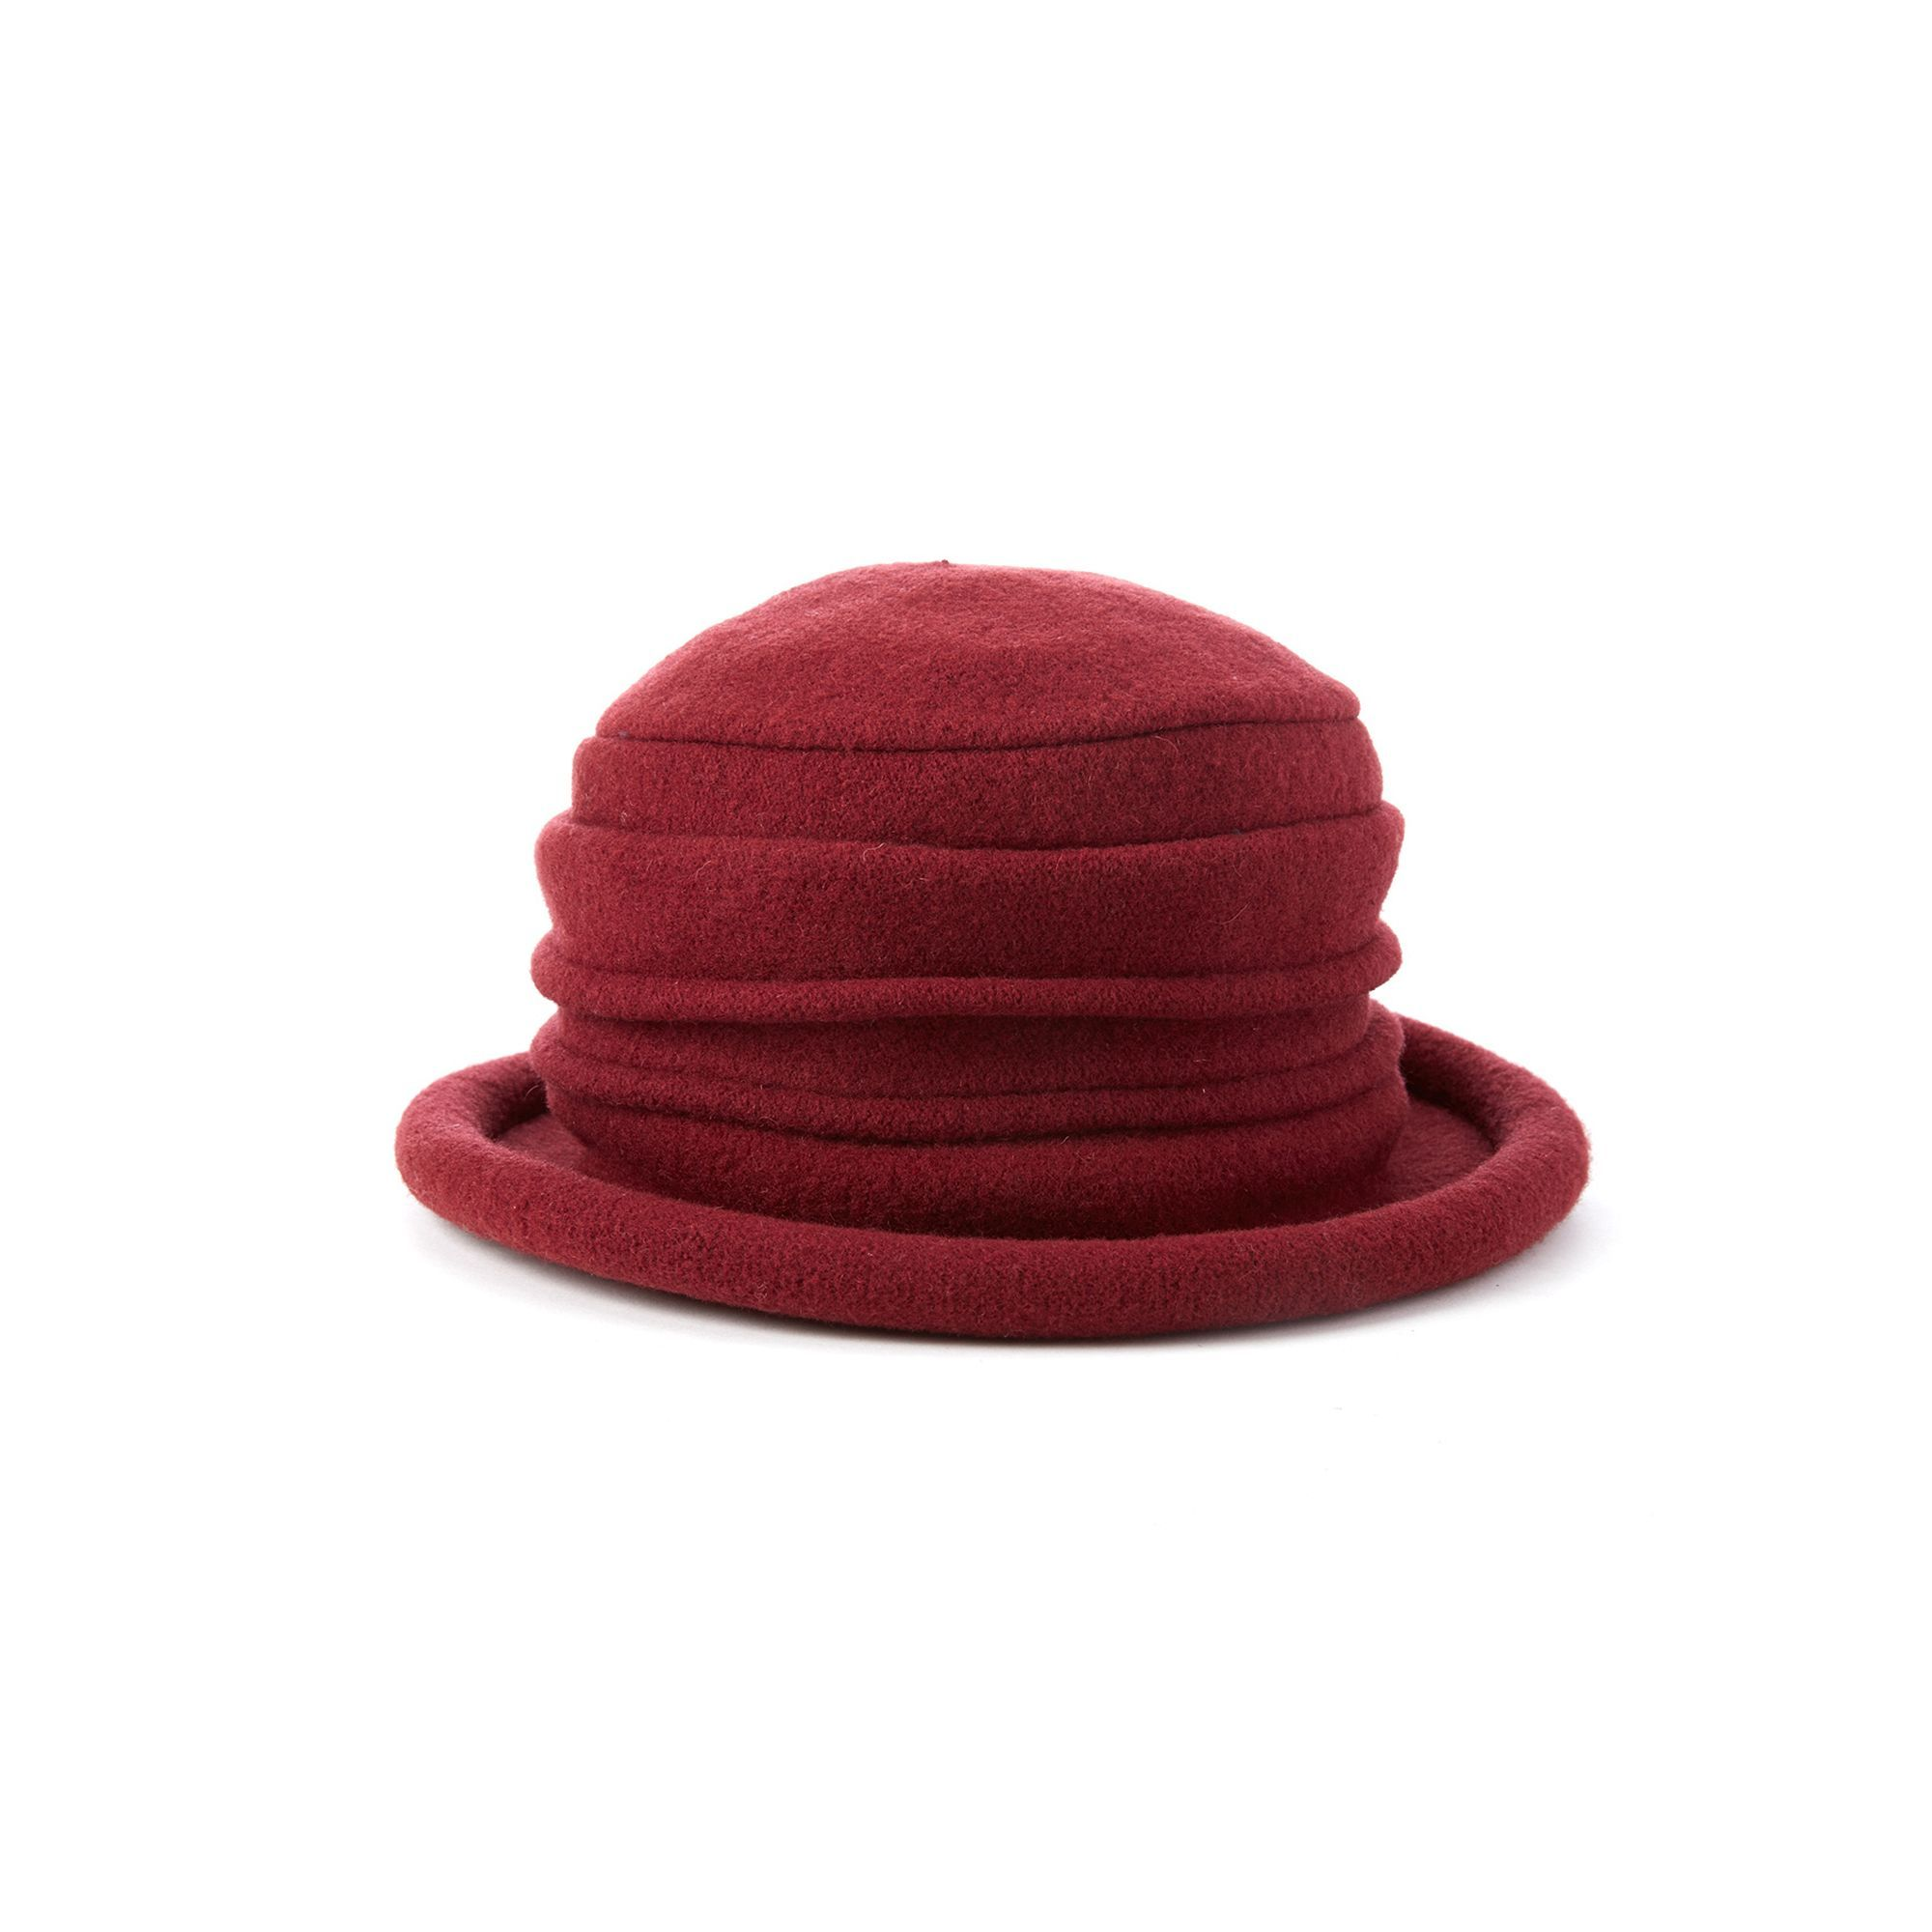 c028e312ce9 Scala Packable Wool Cloche Hat